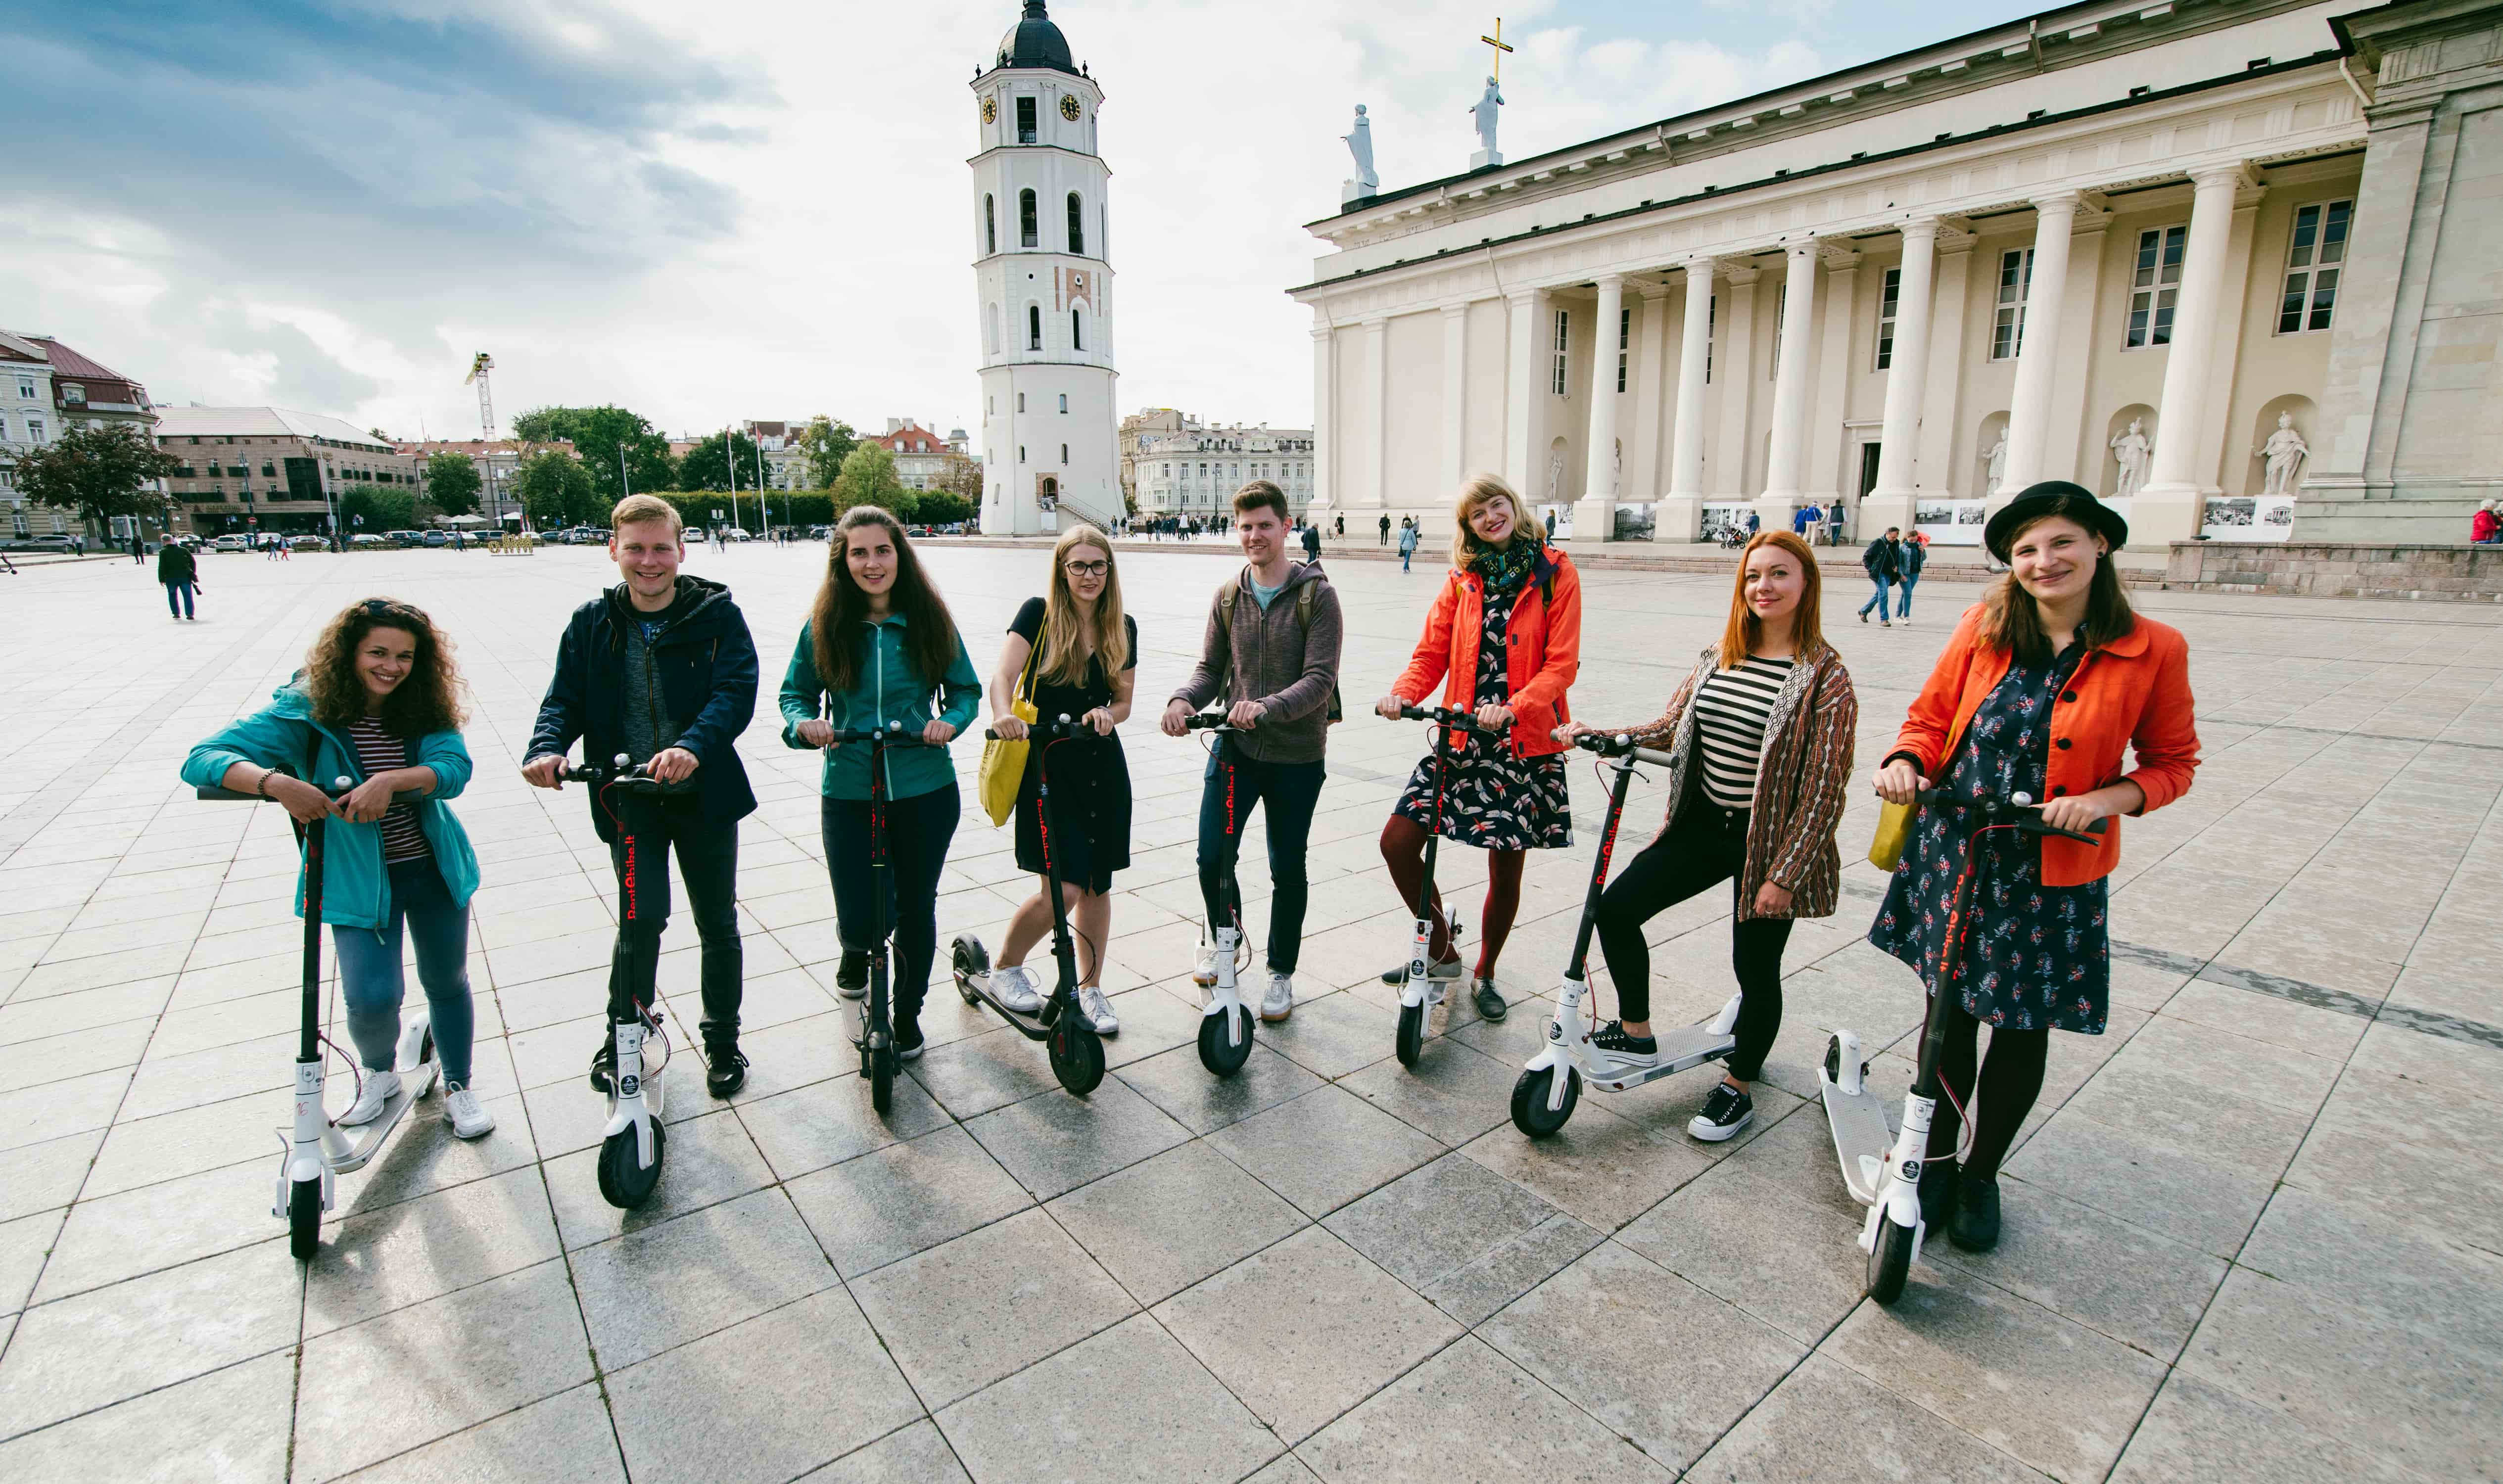 Our tour guides on electric scooters